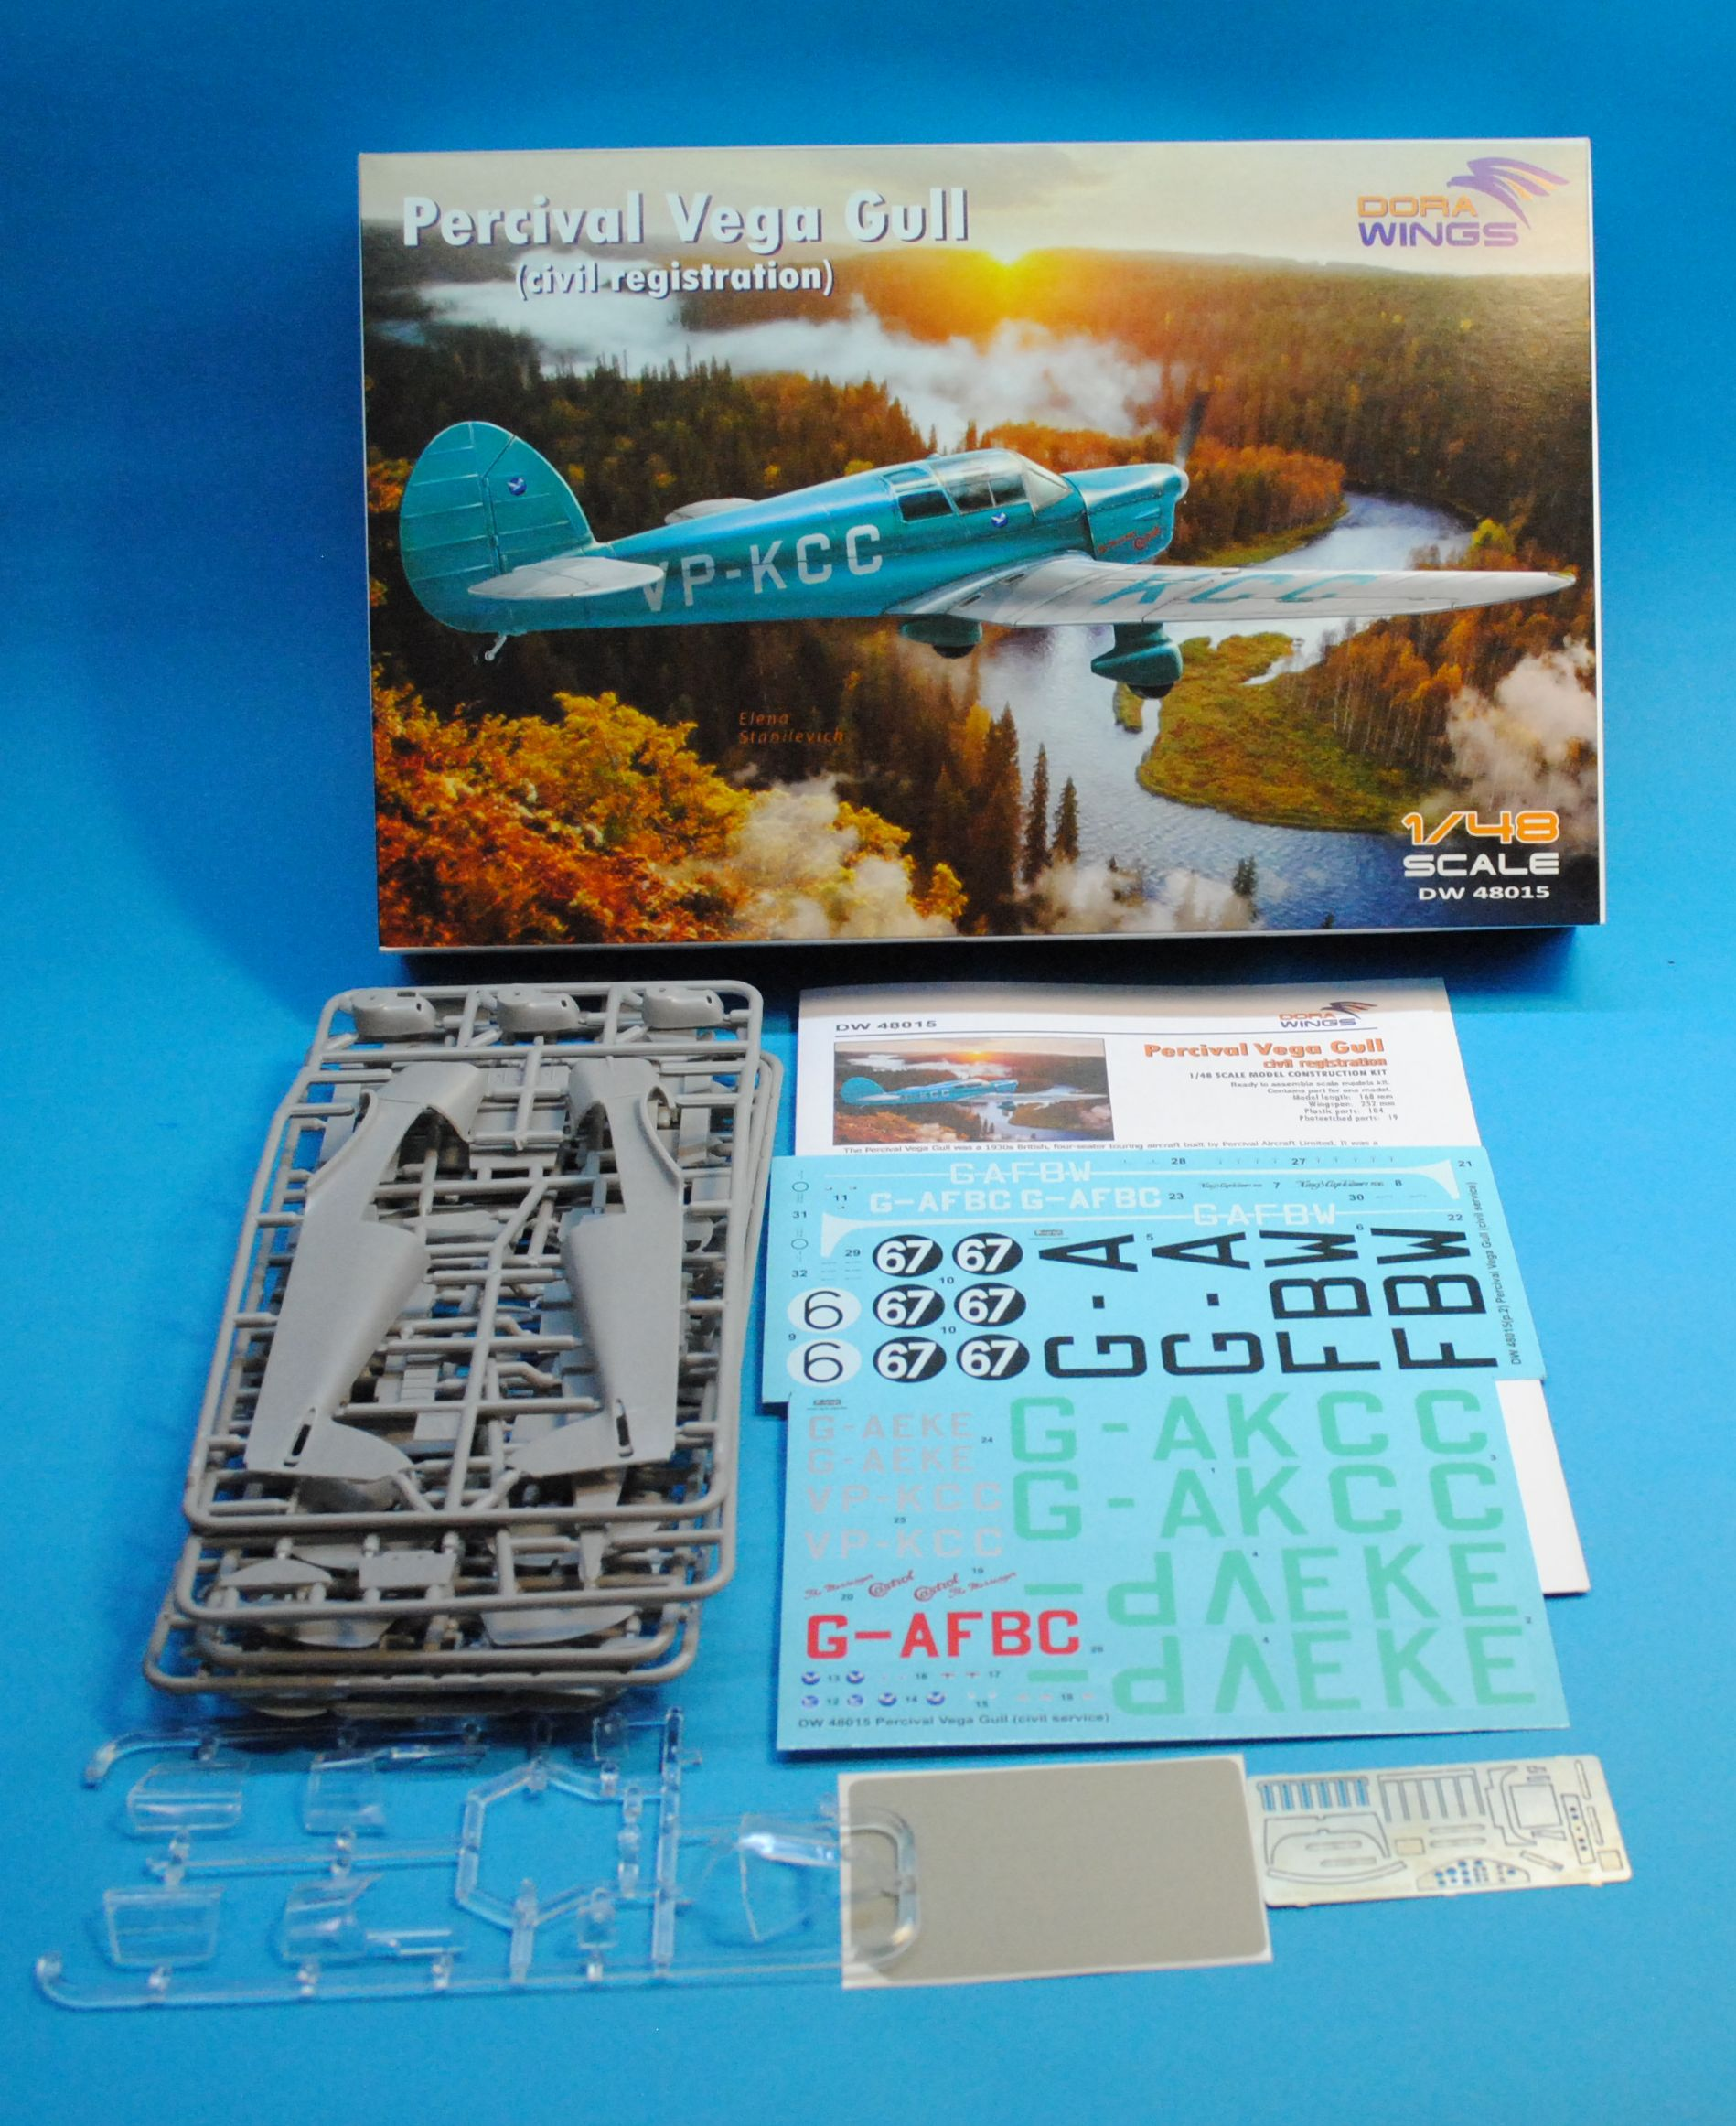 Dora Wings 1/48 Percival Vega Gull (civil registration) # 48015